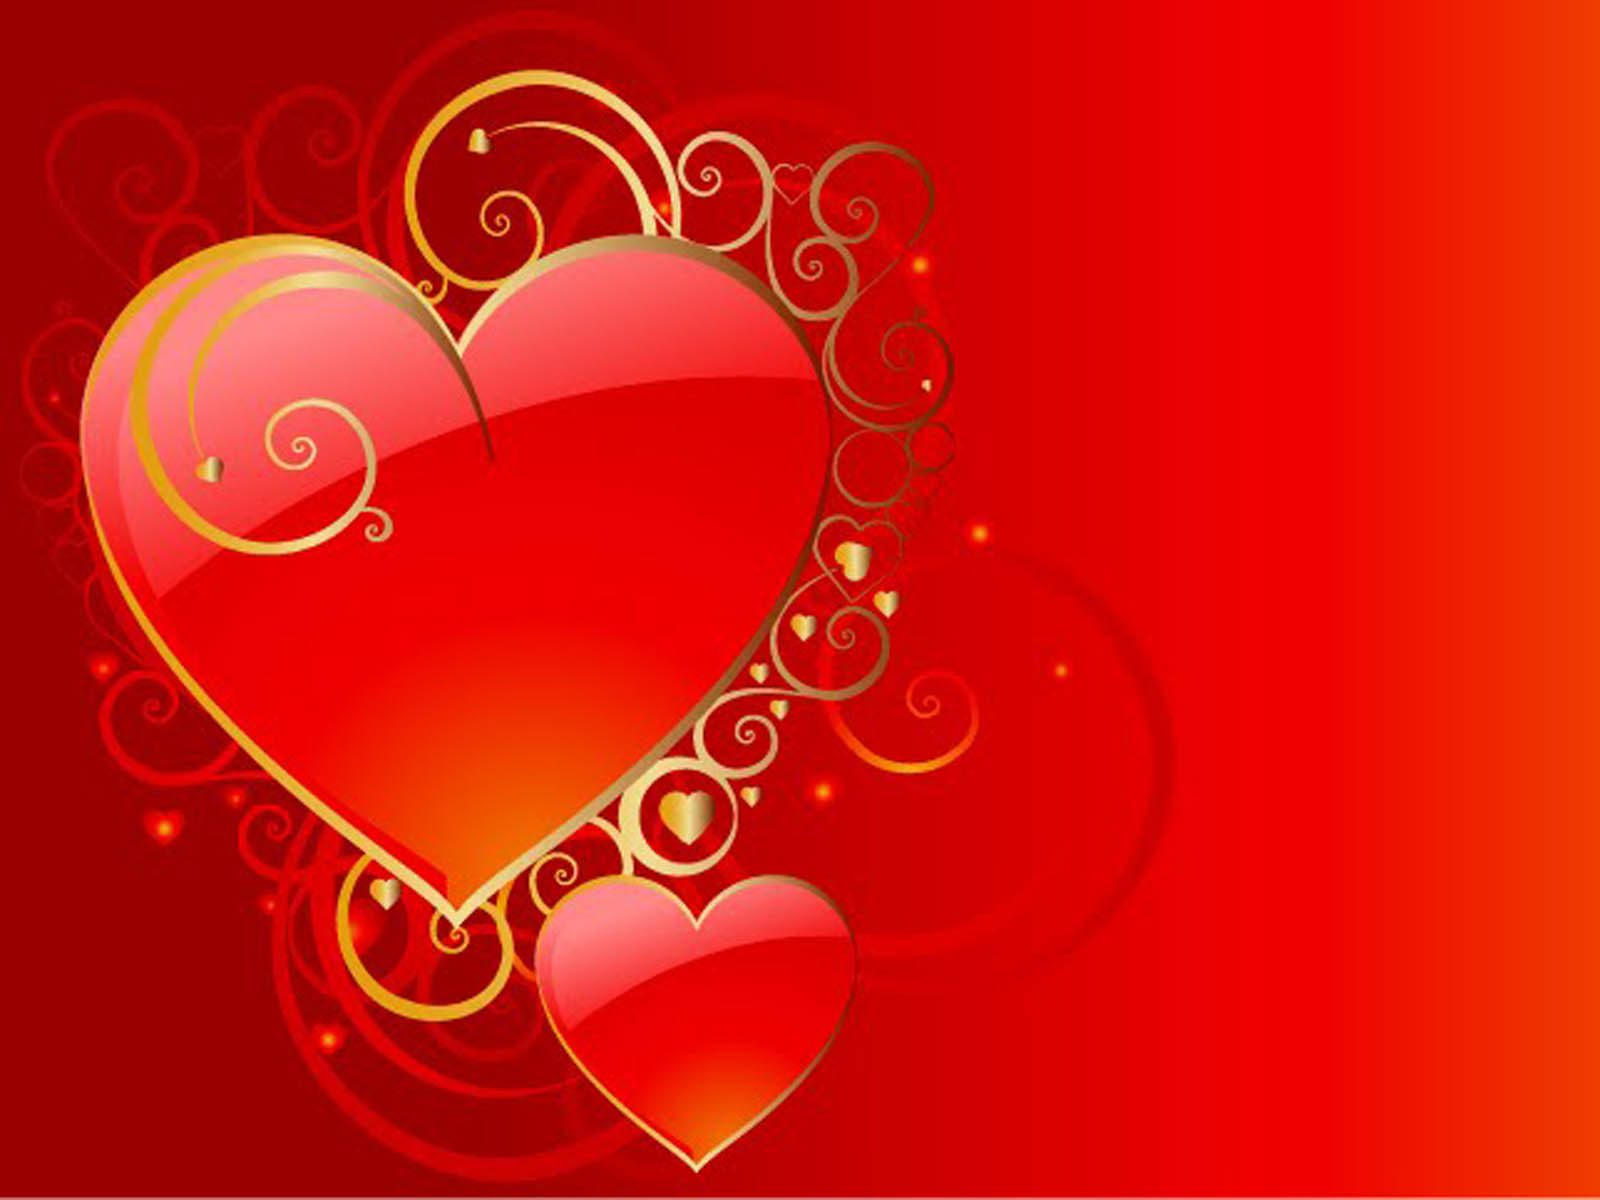 Love Images Desktop Wallpaper : wallpapers: Love Heart Wallpapers